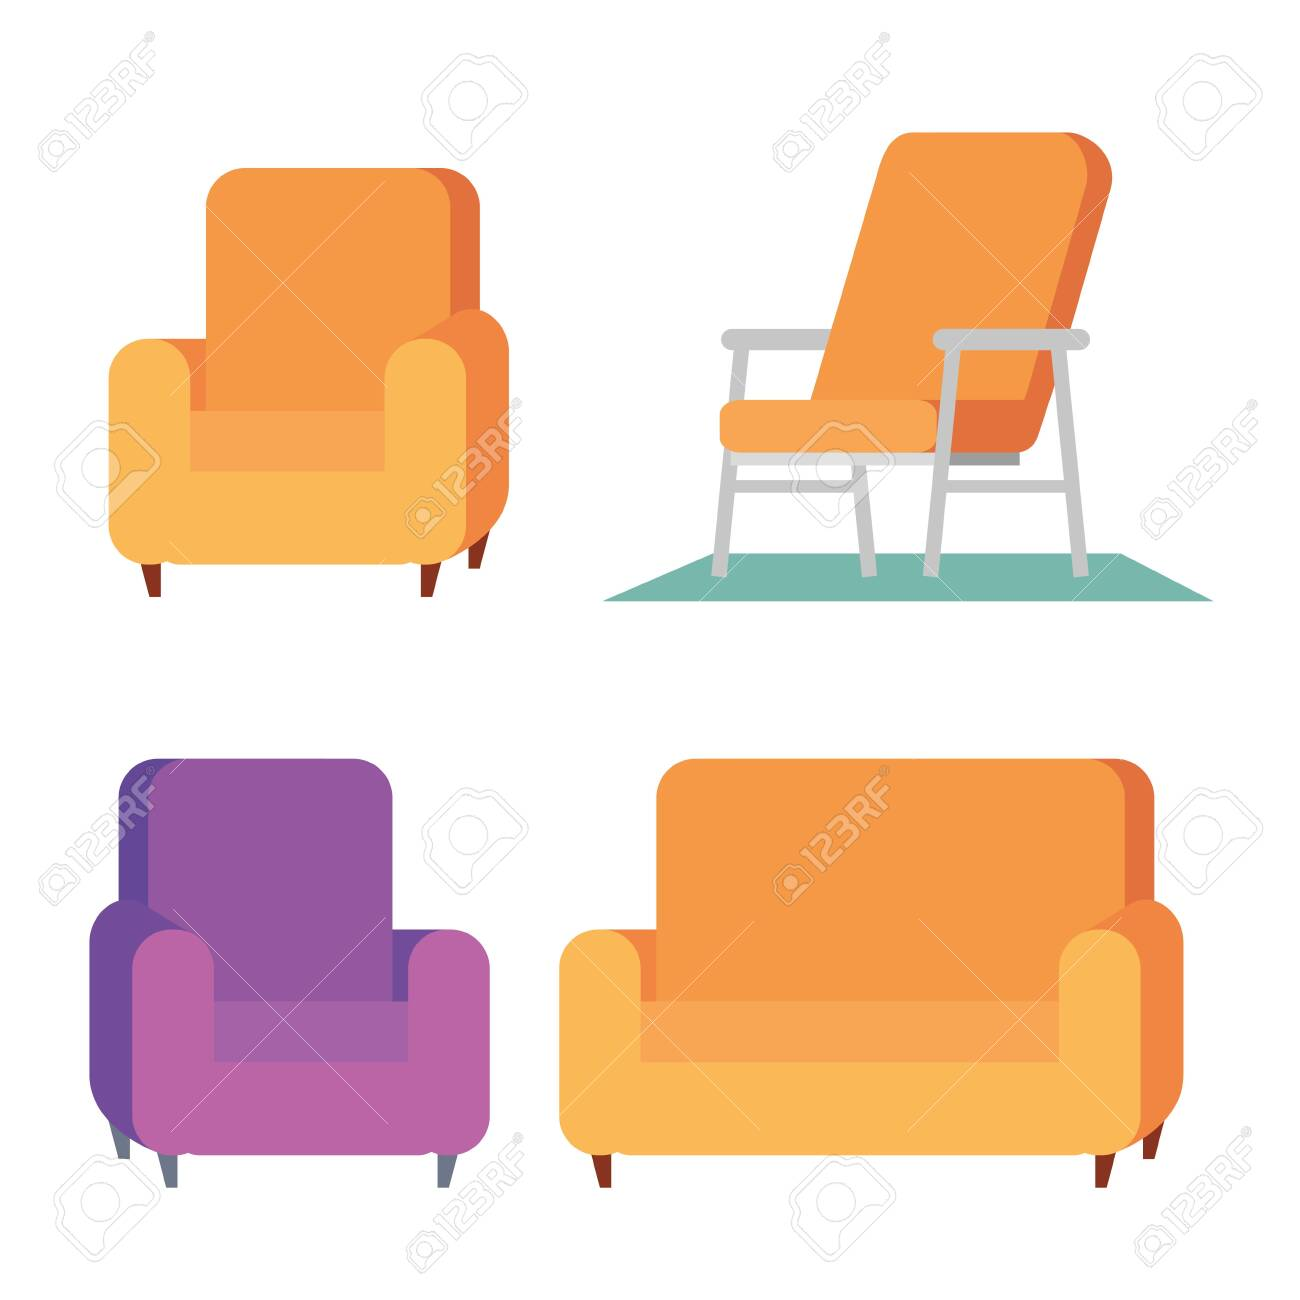 Home Office Furniture Set Icons Vector Illustration Design Royalty Free Cliparts Vectors And Stock Illustration Image 149853394